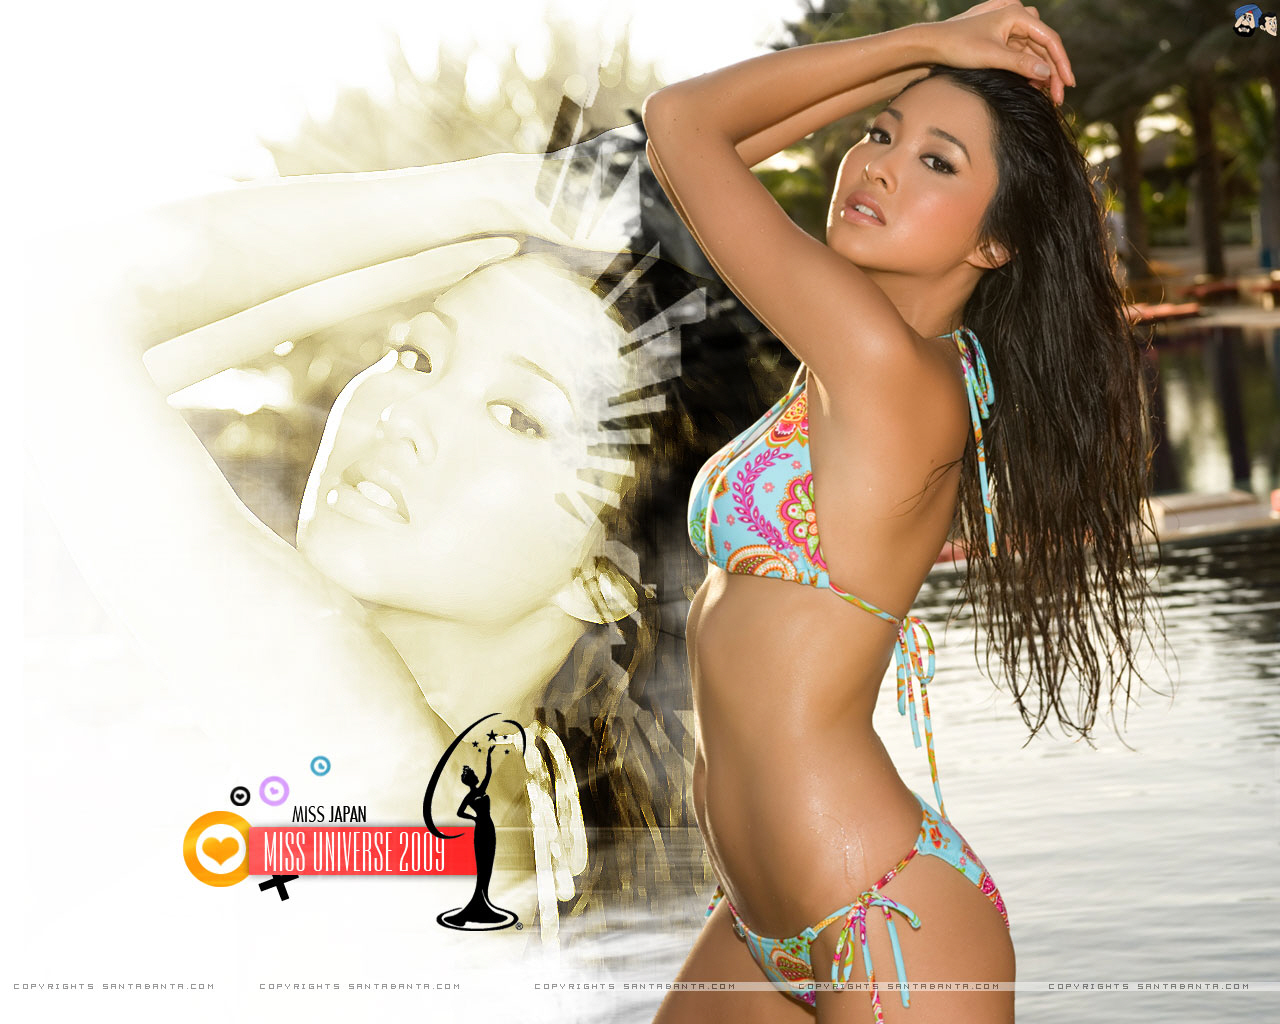 Hot Babes Wallpapers Pack №234 (Miss Universe 2009 - 3)